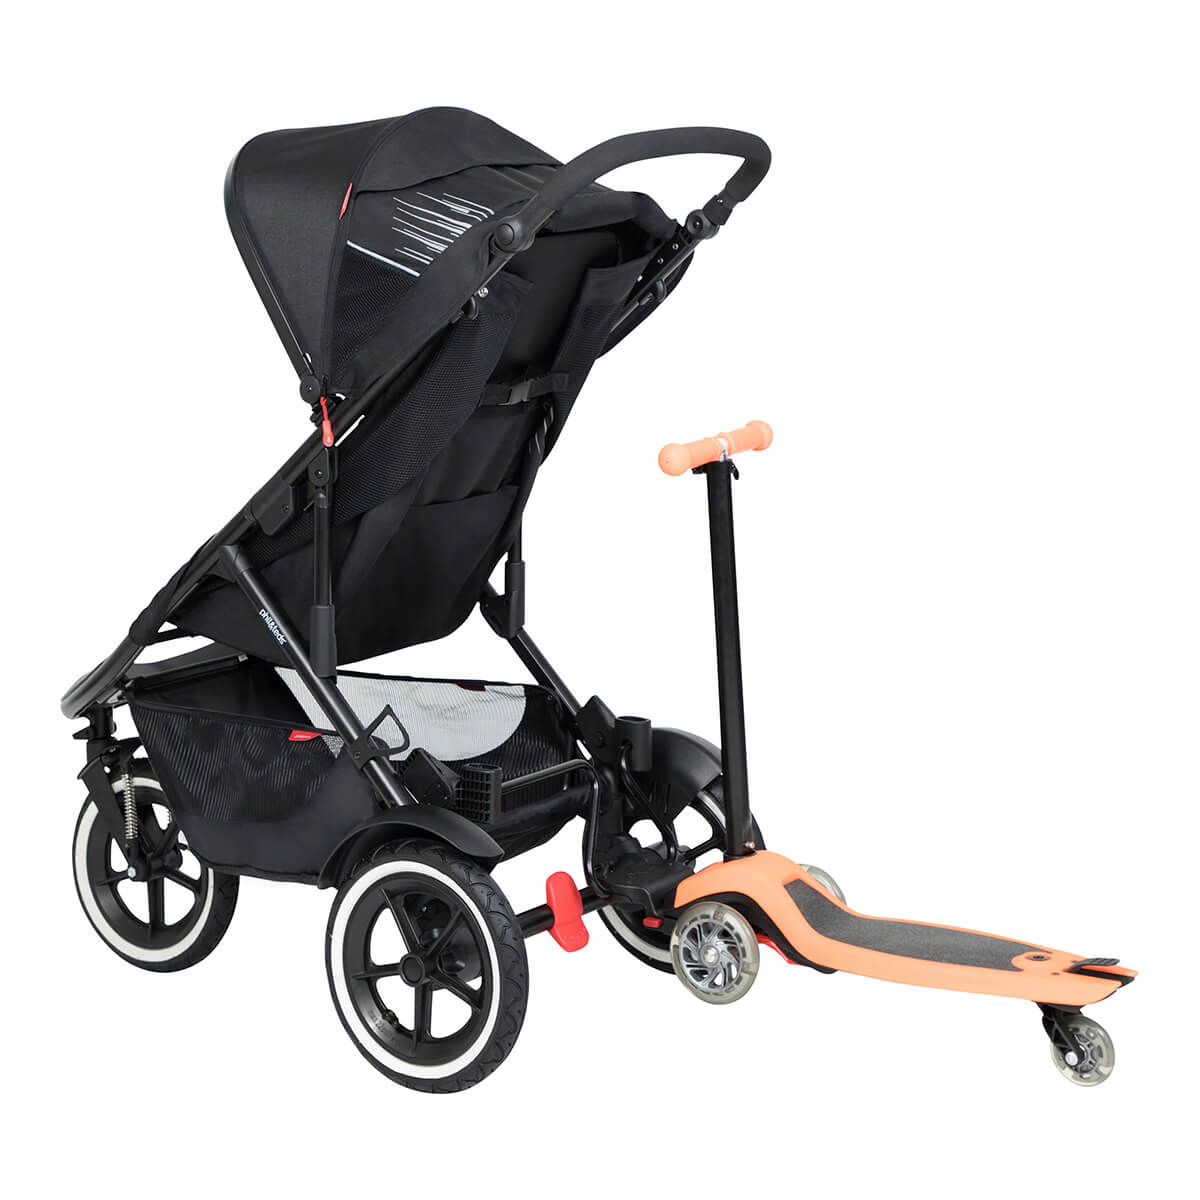 https://cdn.accentuate.io/4509900832845/19466204315842/philteds-sport-buggy-with-freerider-stroller-board-in-rear-v1626485397303.jpg?1200x1200